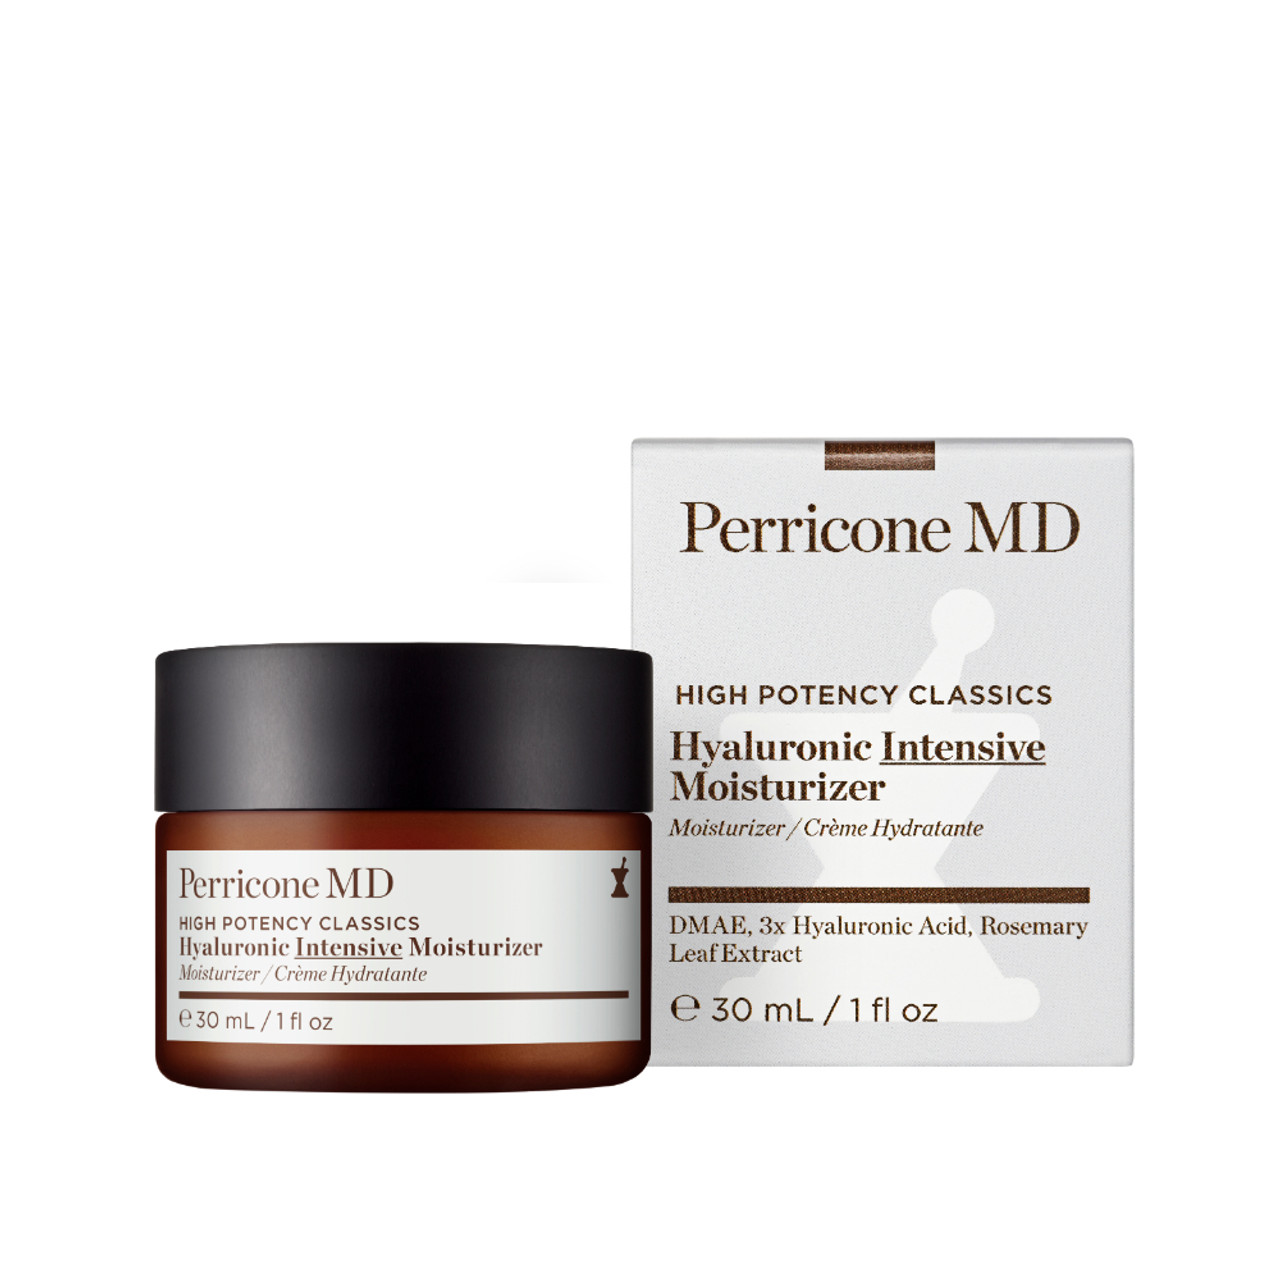 Perricone MD Hyaluronic Intensive Moisturizer - No Cap